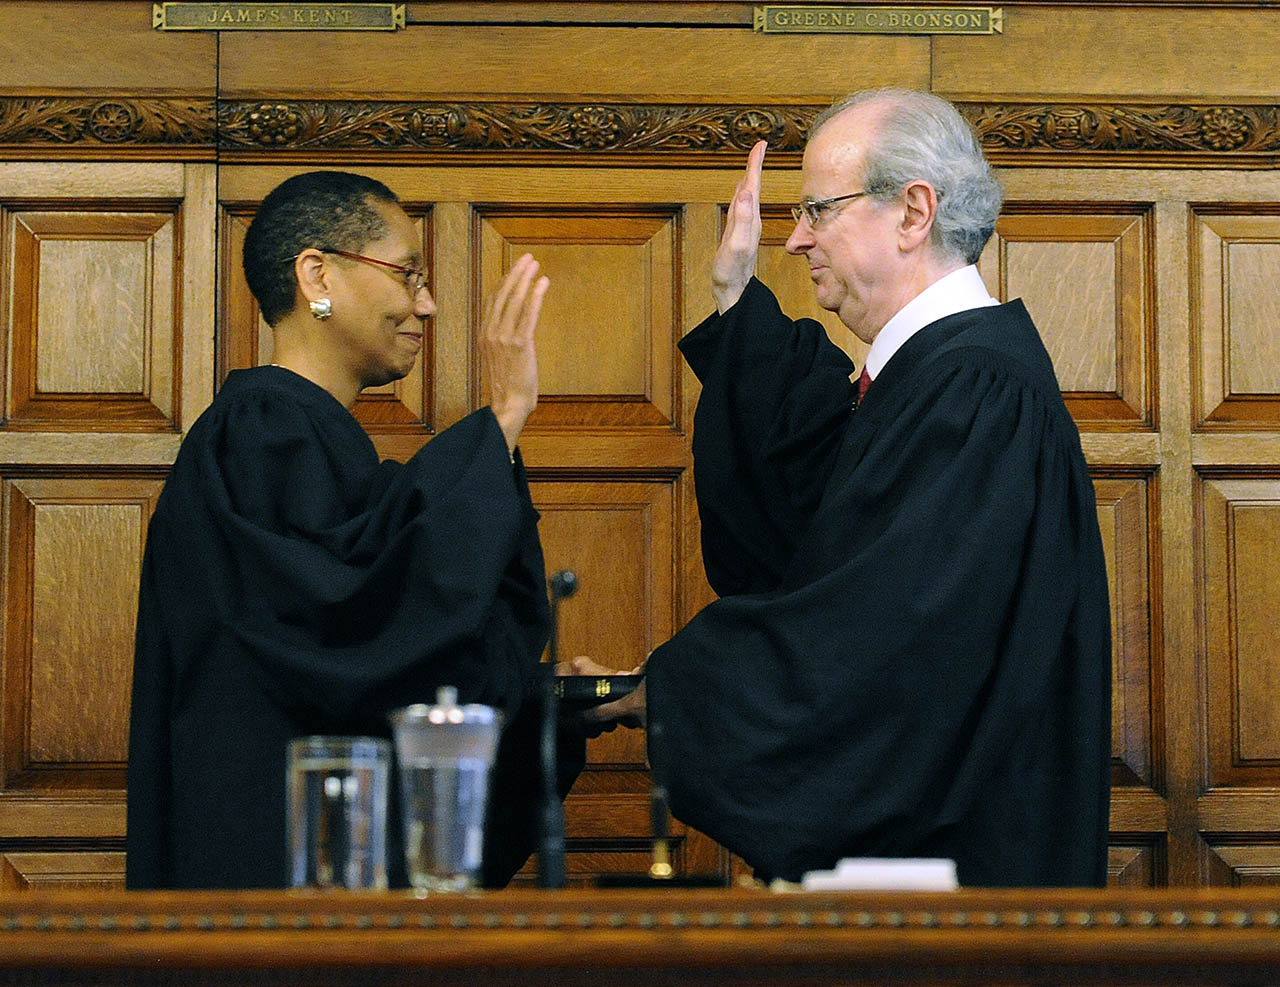 <div class='meta'><div class='origin-logo' data-origin='AP'></div><span class='caption-text' data-credit='AP Photo/Hans Pennink'>Court of Appeals judge Sheila Abdus-Salaam, left, is sworn in by New York Chief Judge Jonathan Lippman at the New York Court of Appeals in Albany, N.Y., Thursday, June 20, 2013.</span></div>